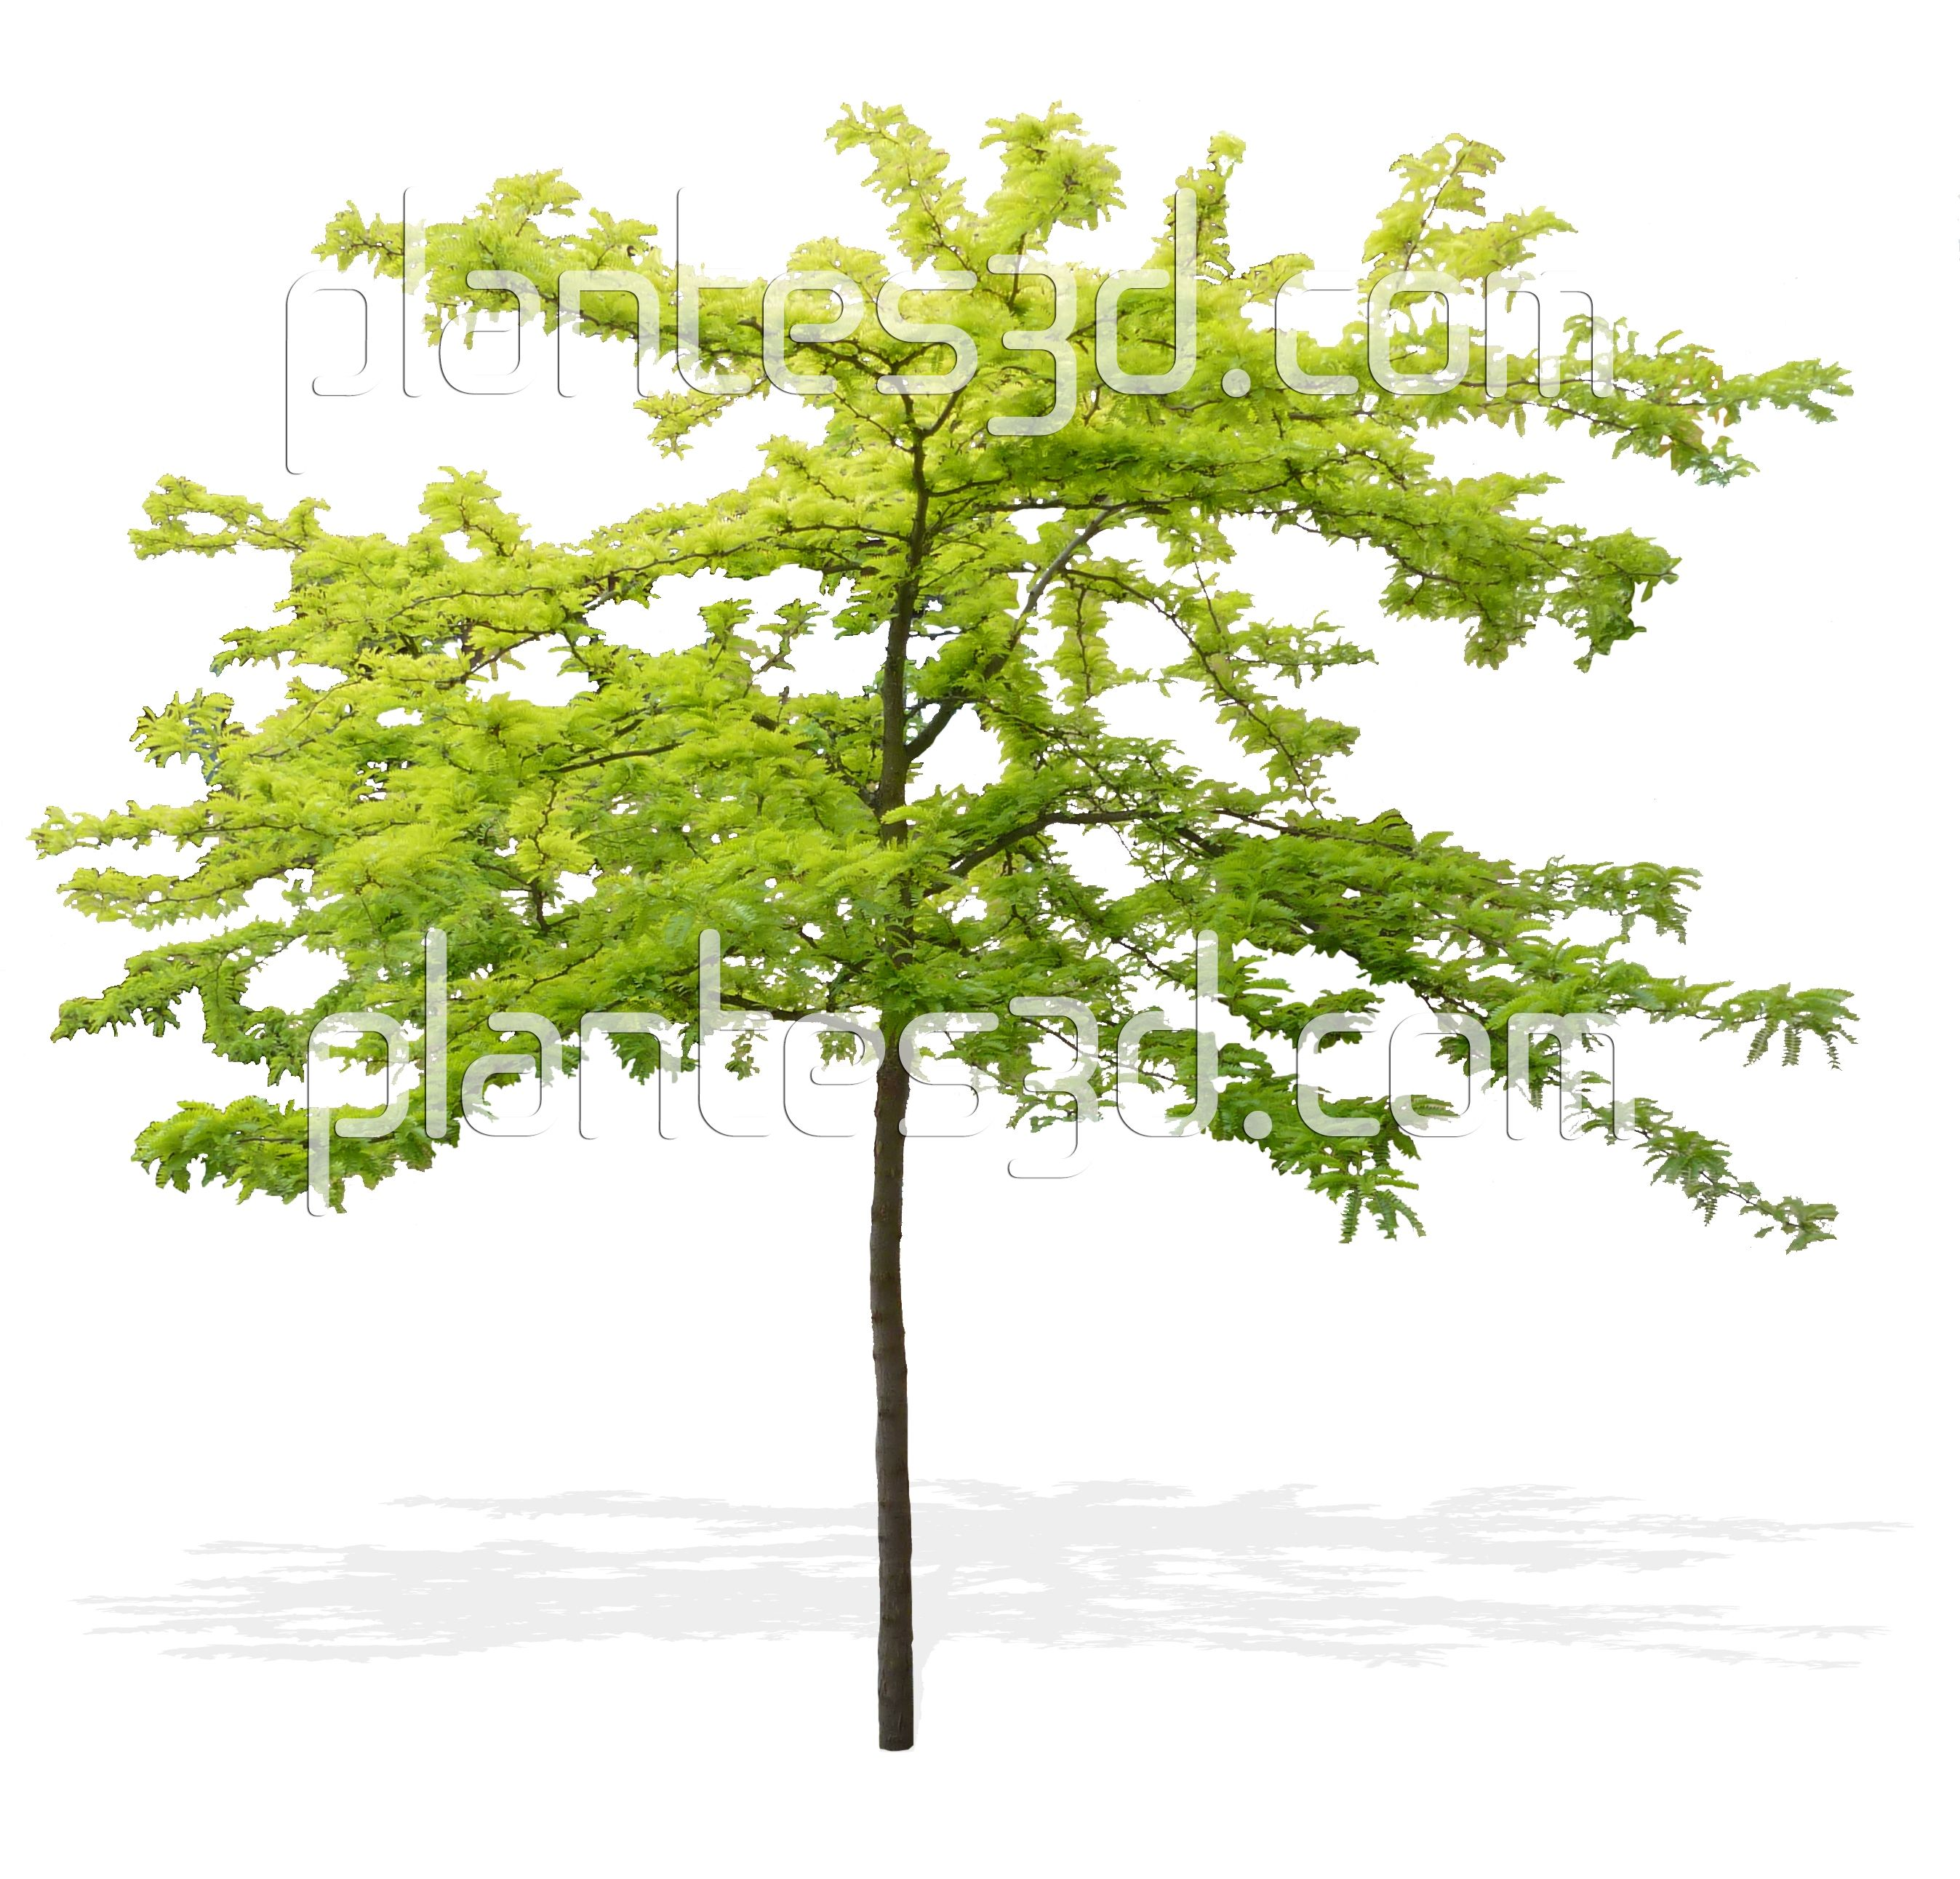 Top view plants 02 2d plant entourage for architecture - Arbre Gratuit Png Free Tree Png Cutout